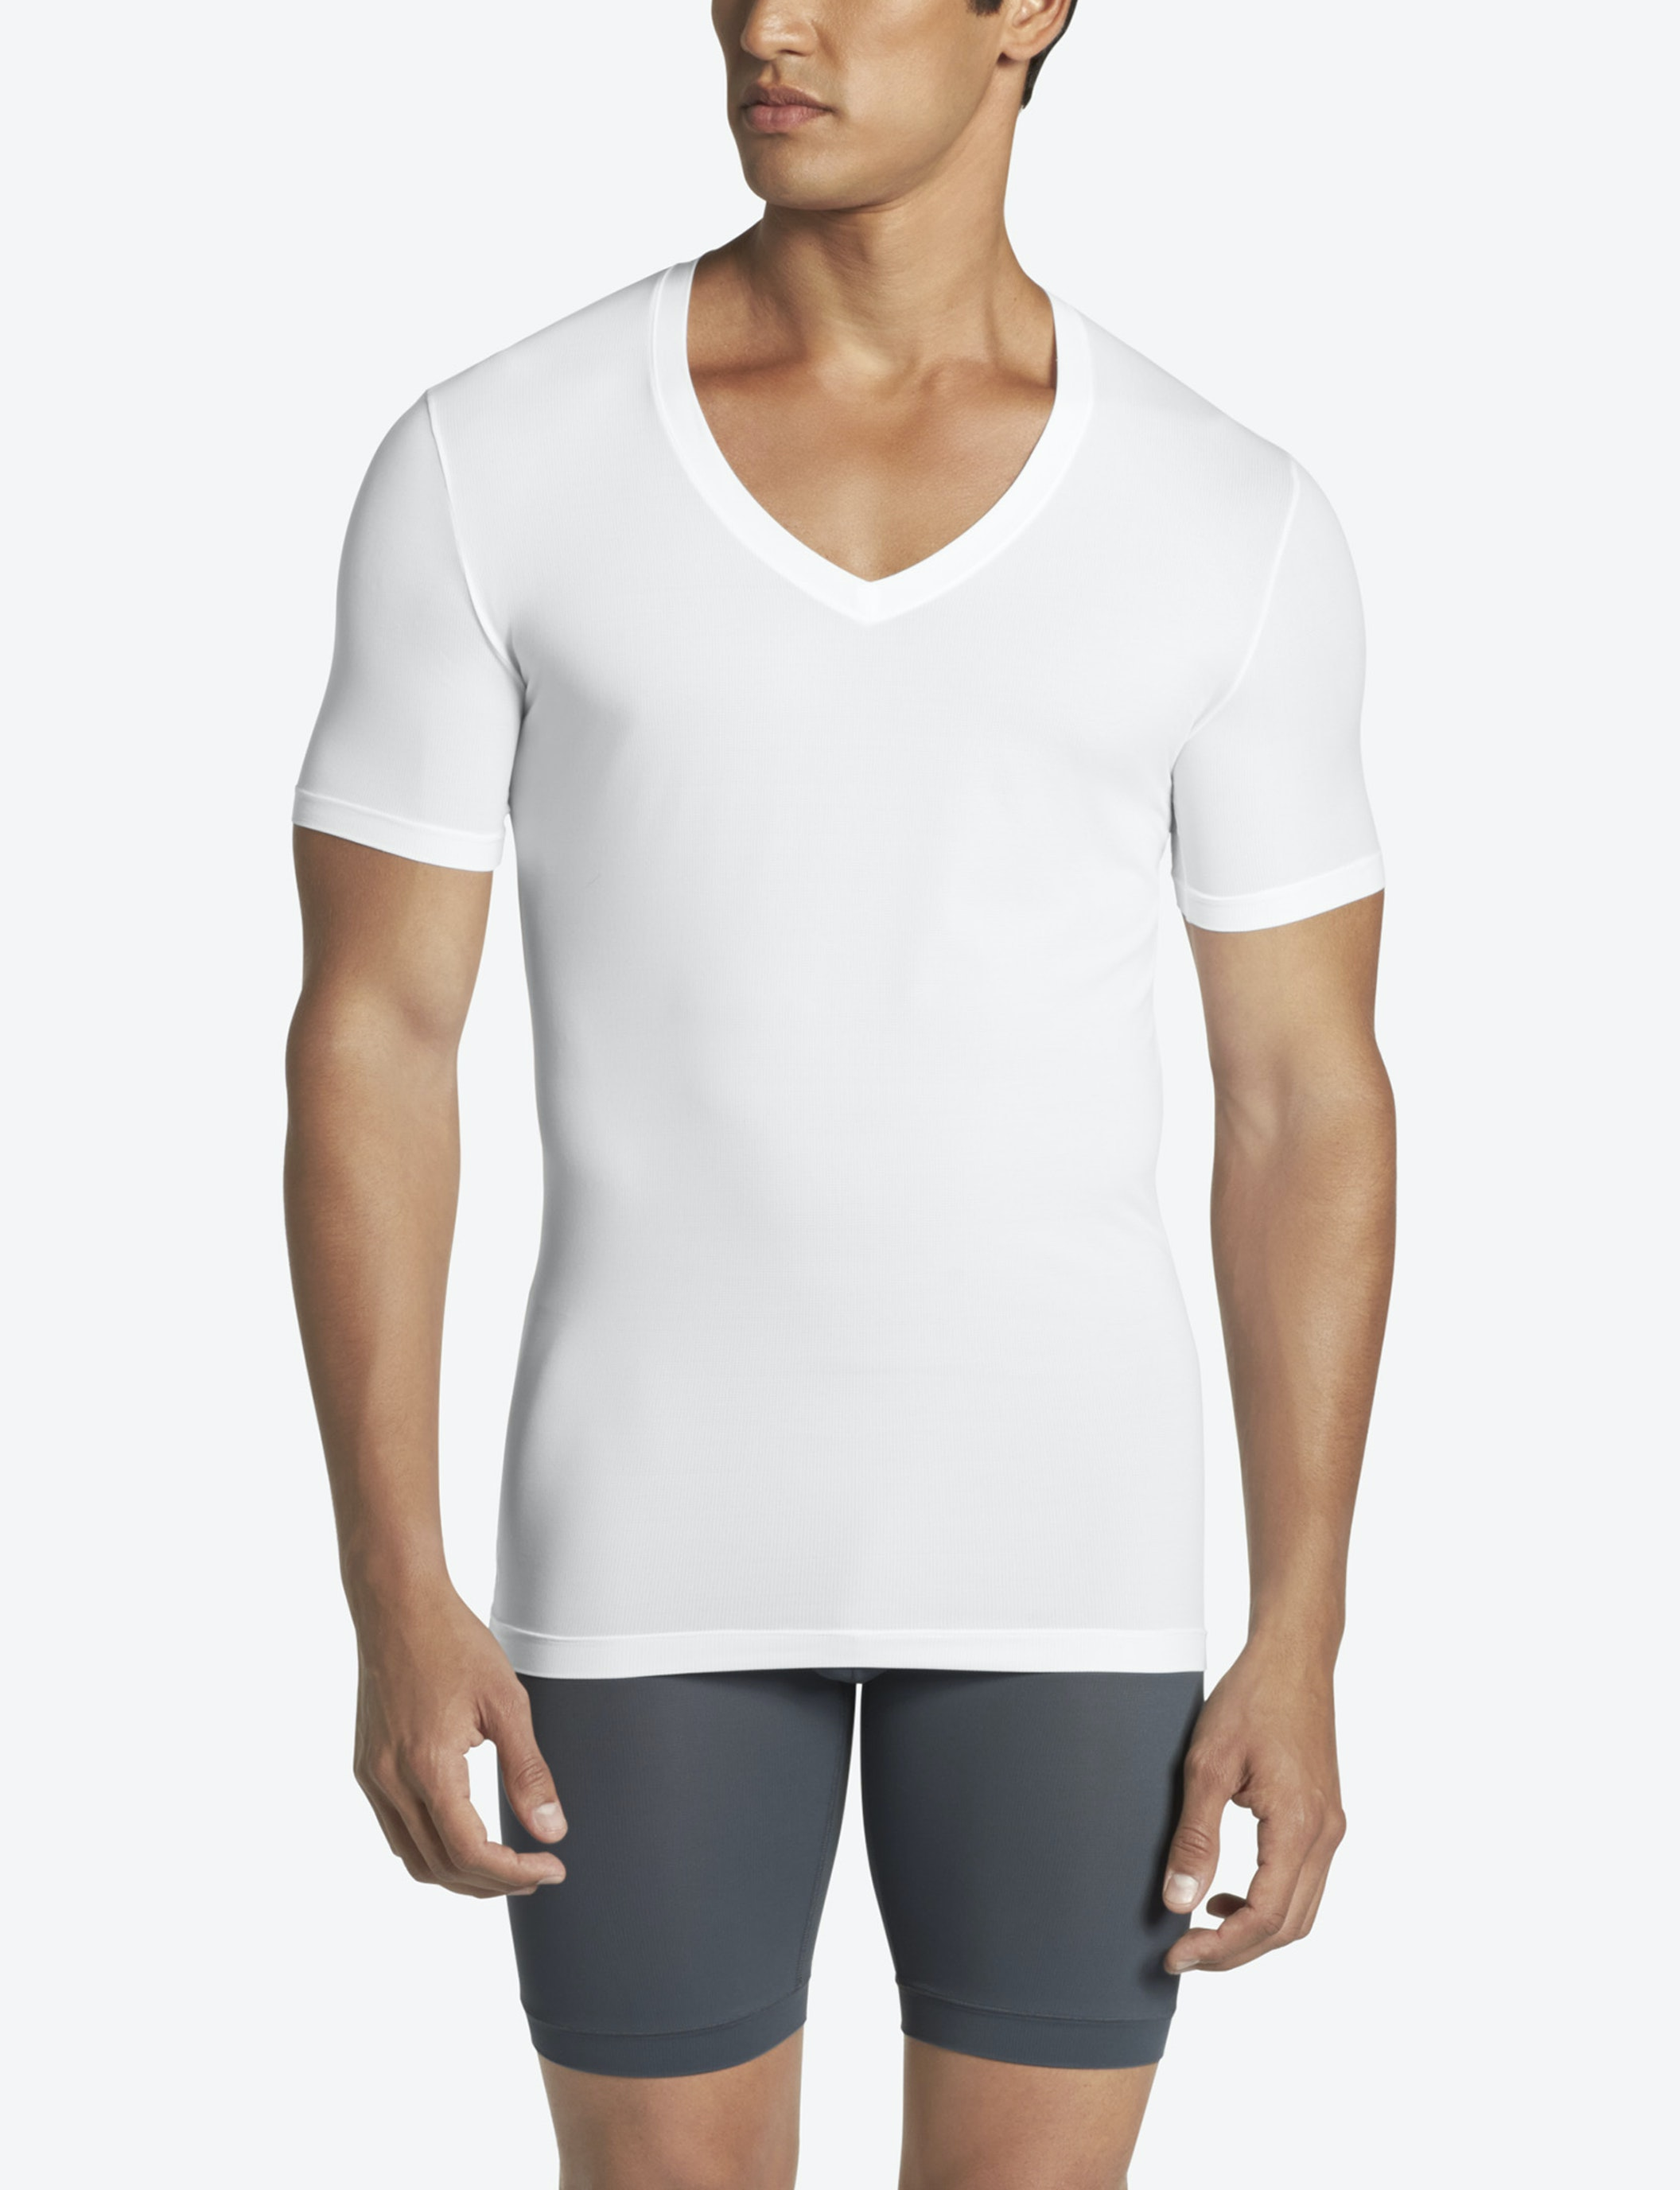 Low Cut Mens V Neck T Shirts